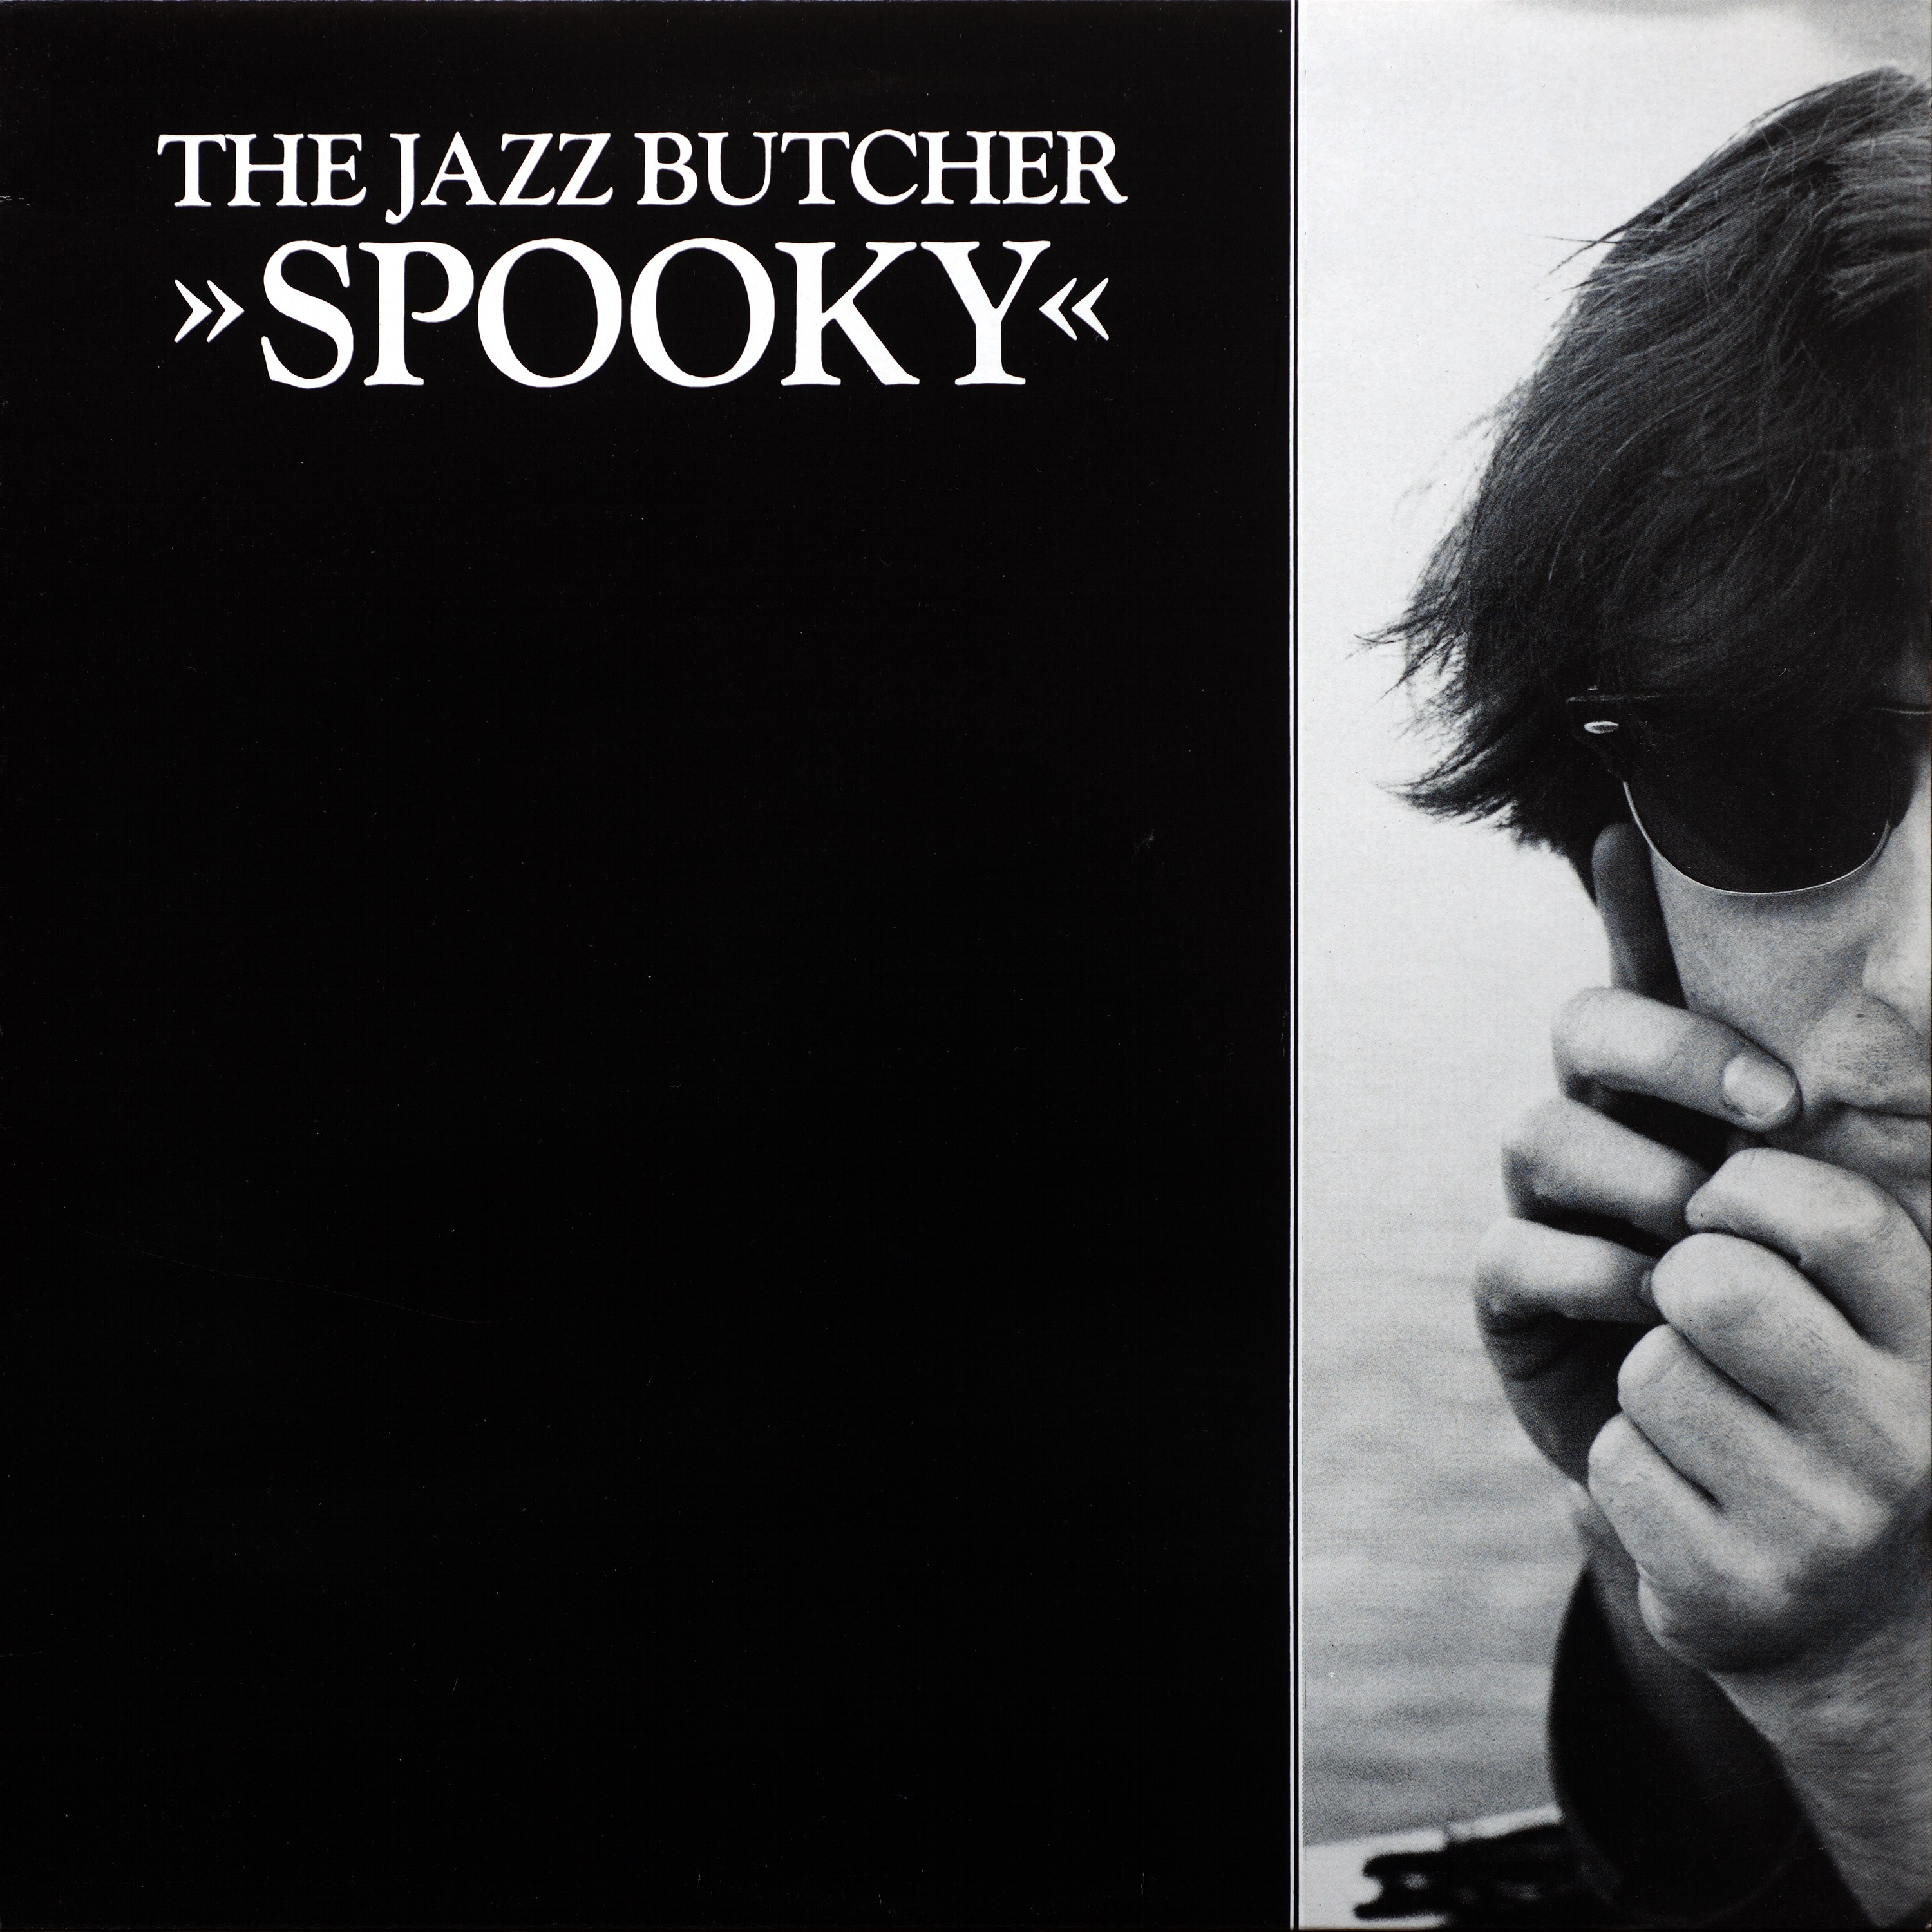 The Jazz Butcher Conspiracy Albums Spooky